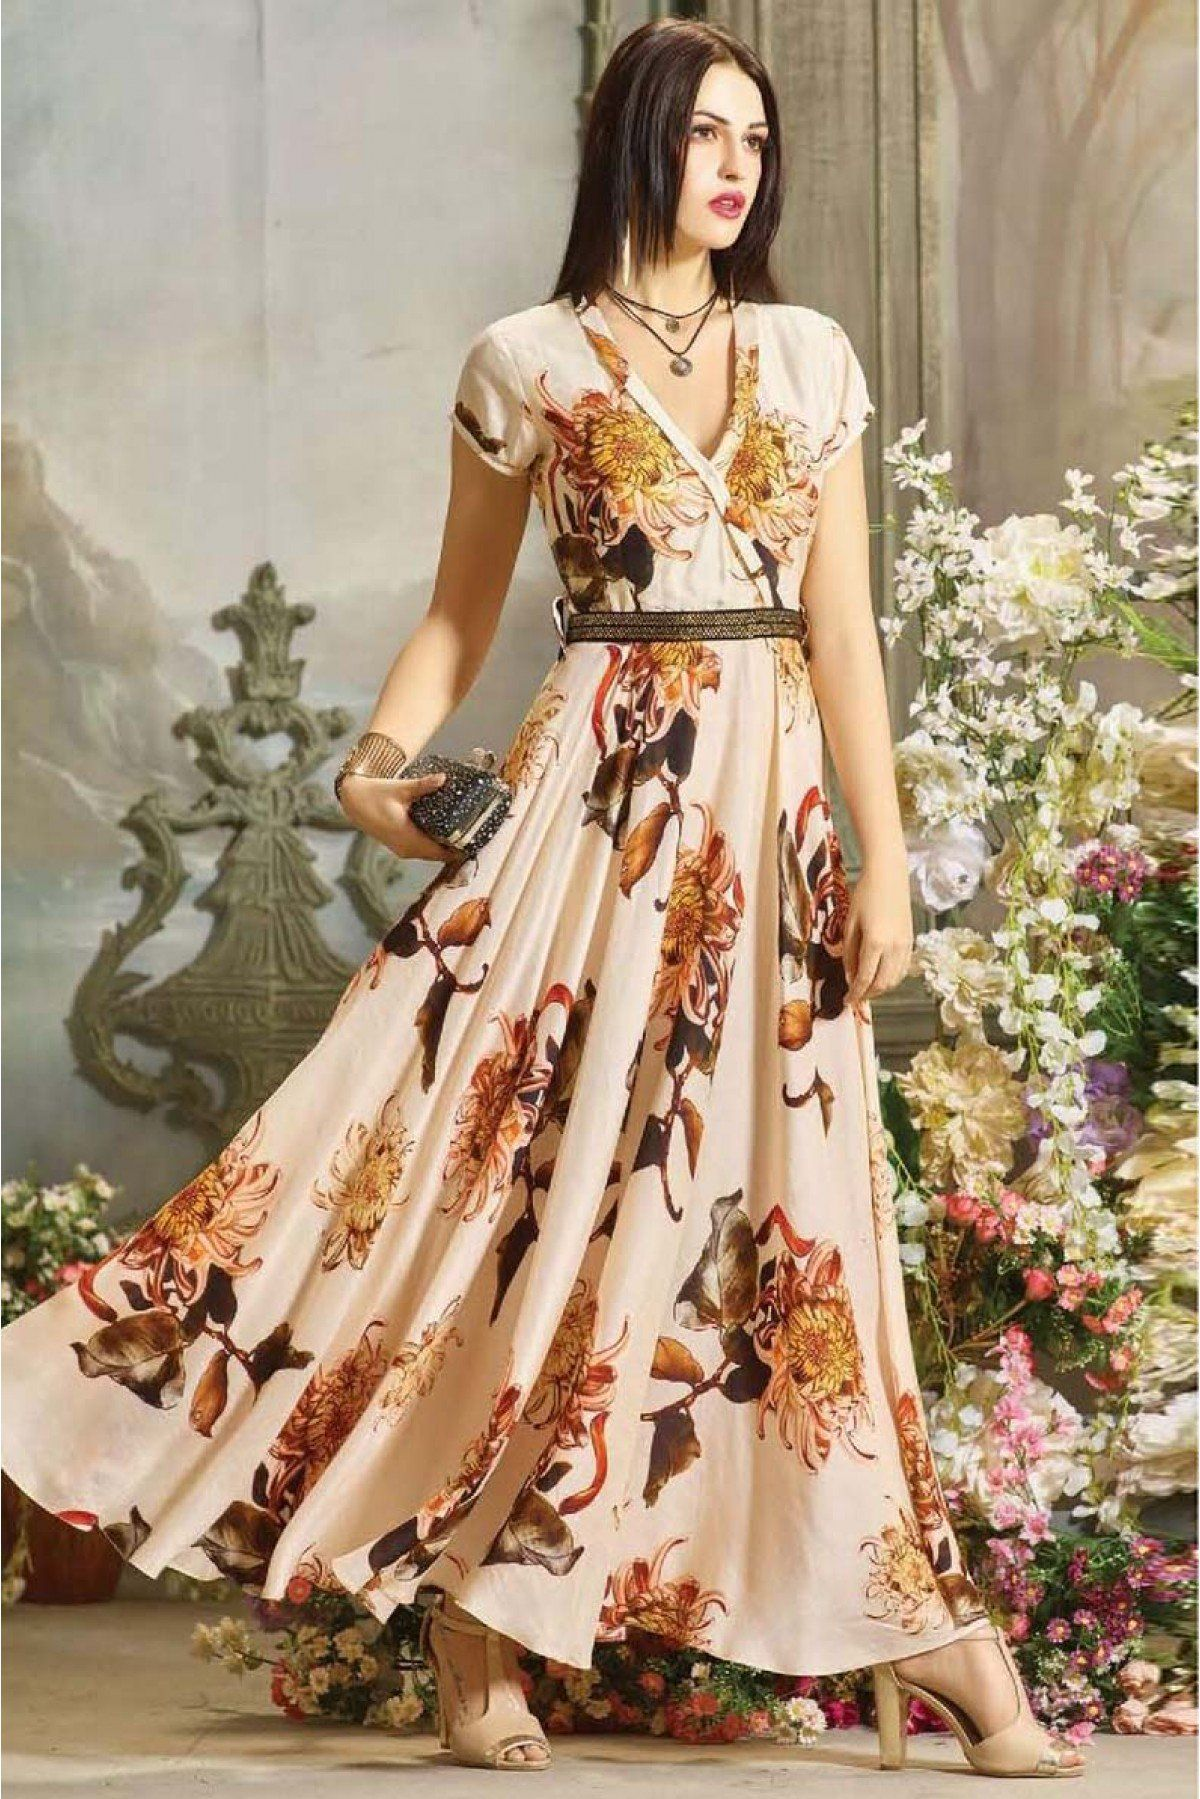 Buy Muslin Cotton Gown In Light Peach Colour for women   ninecolours.com.  Worldwide Free Shipping Available! 446ac1aff04a